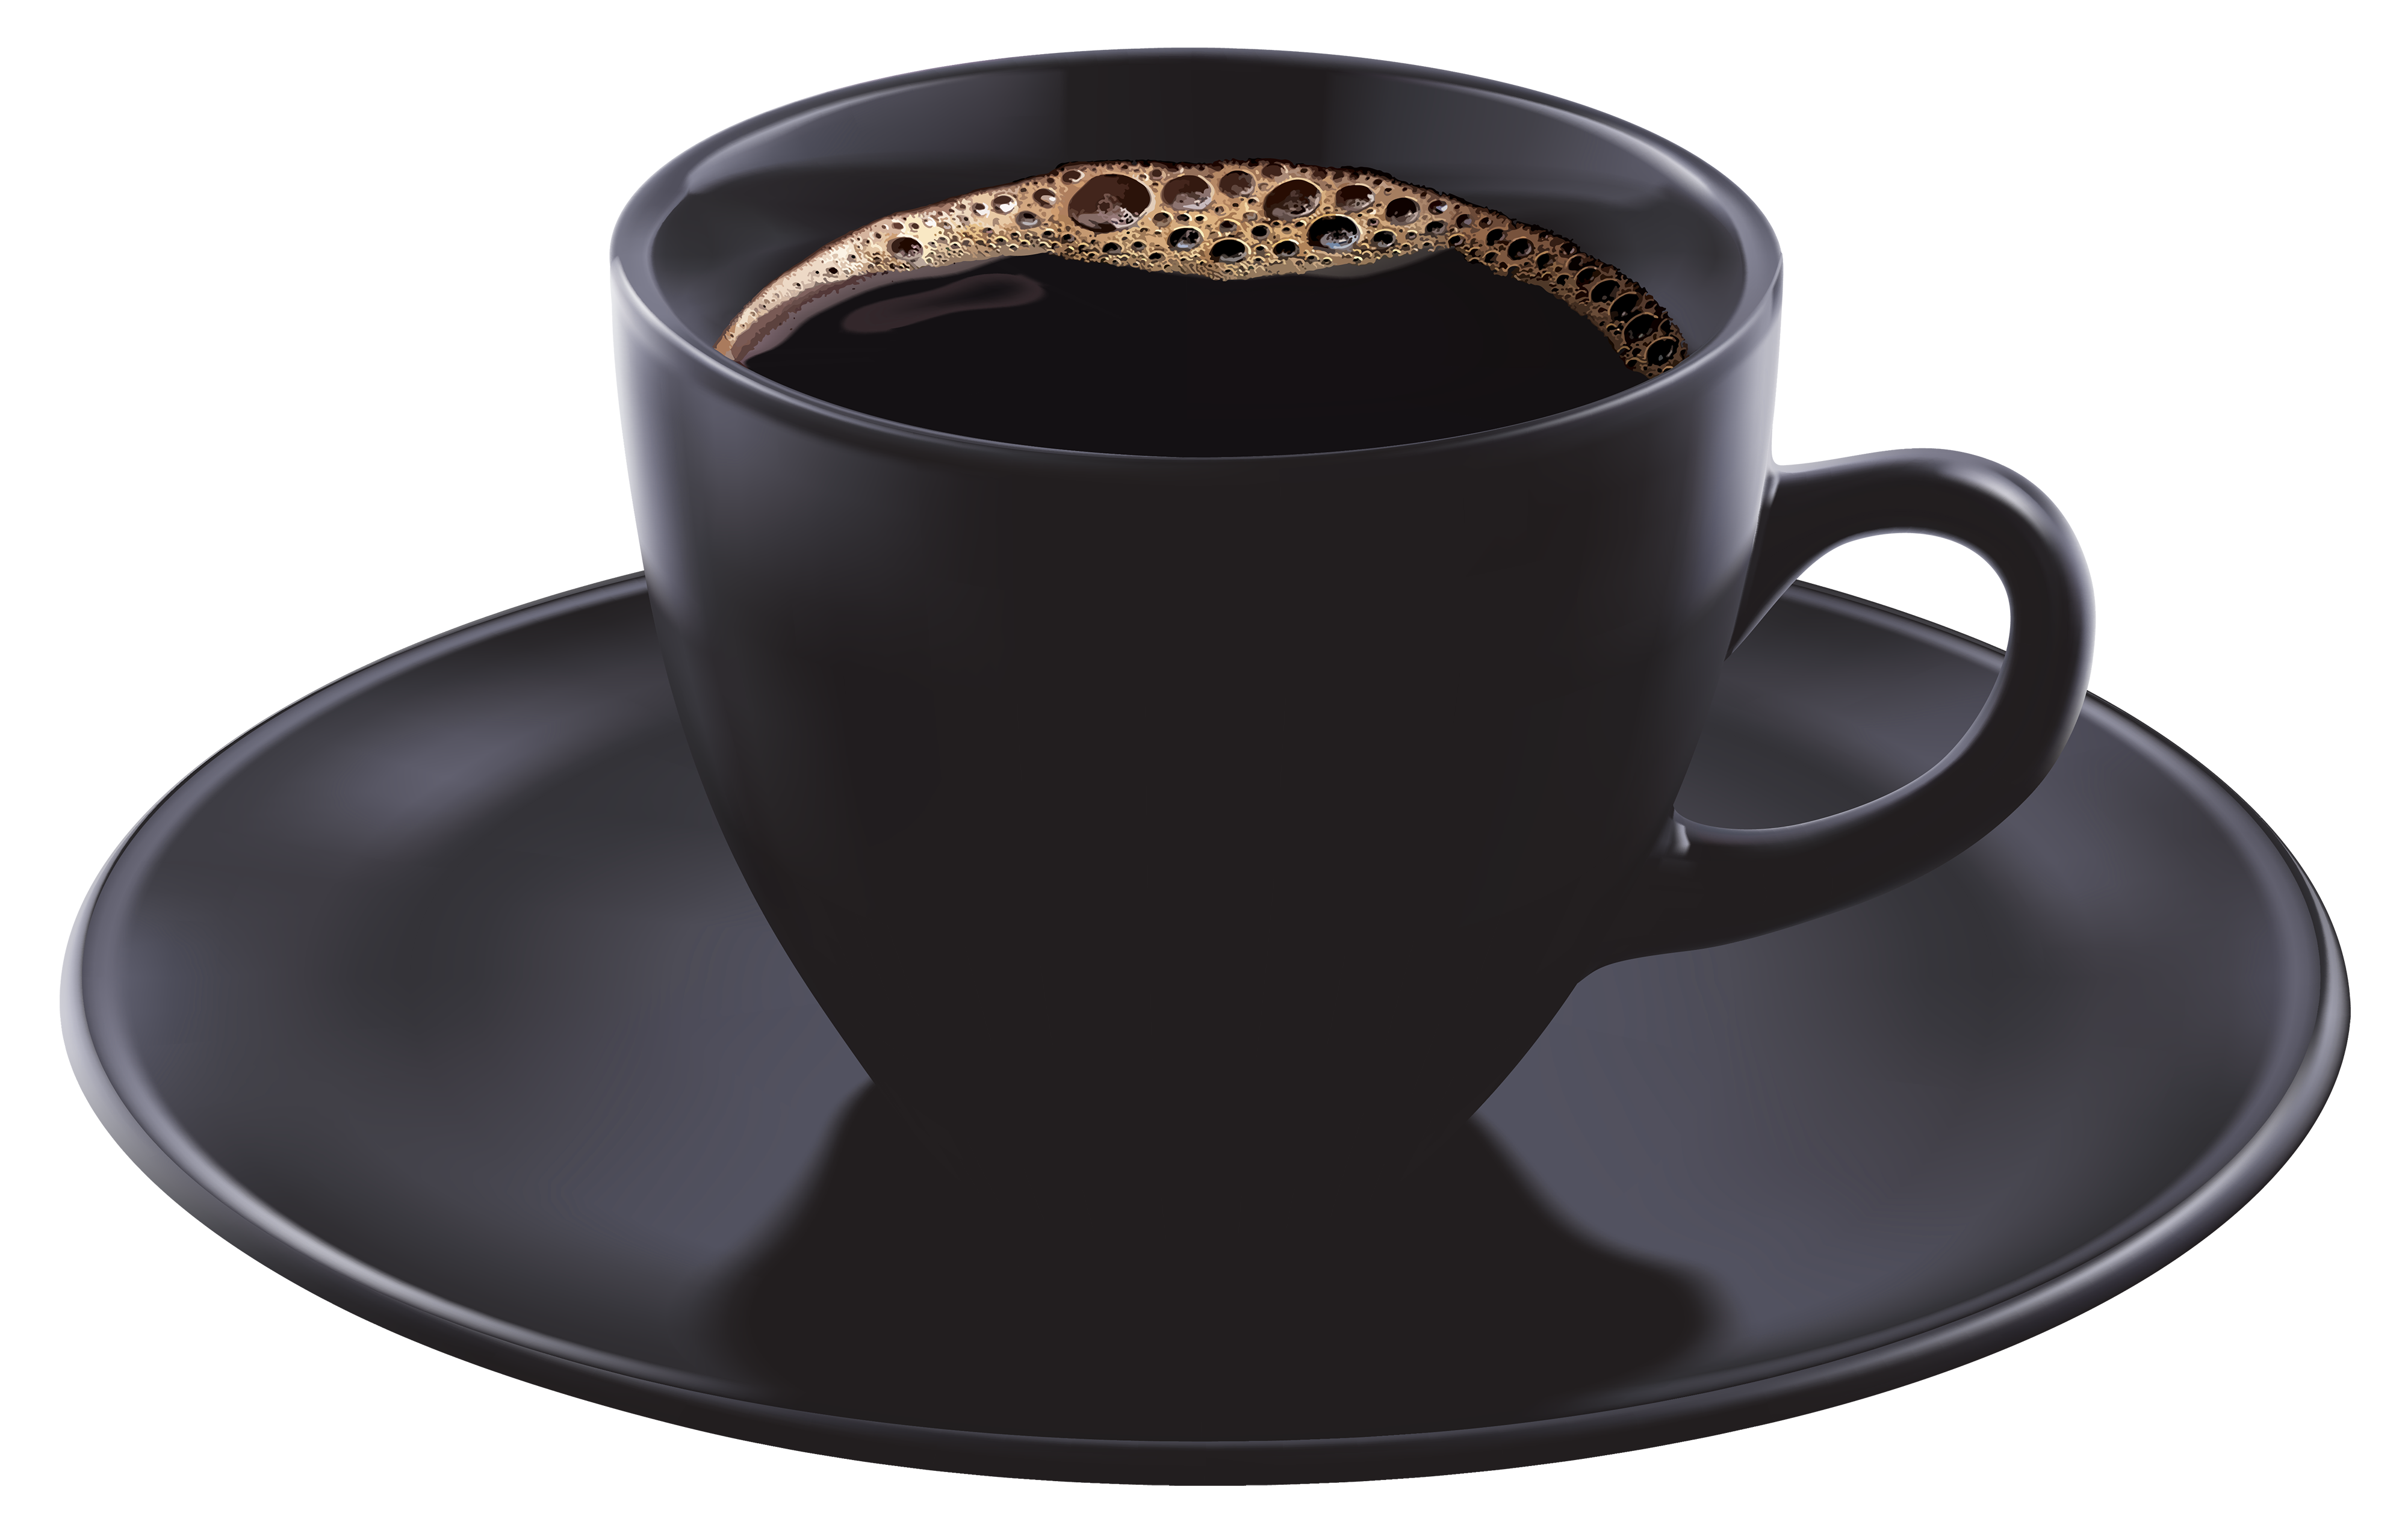 Black cup png image. Clipart coffee summer